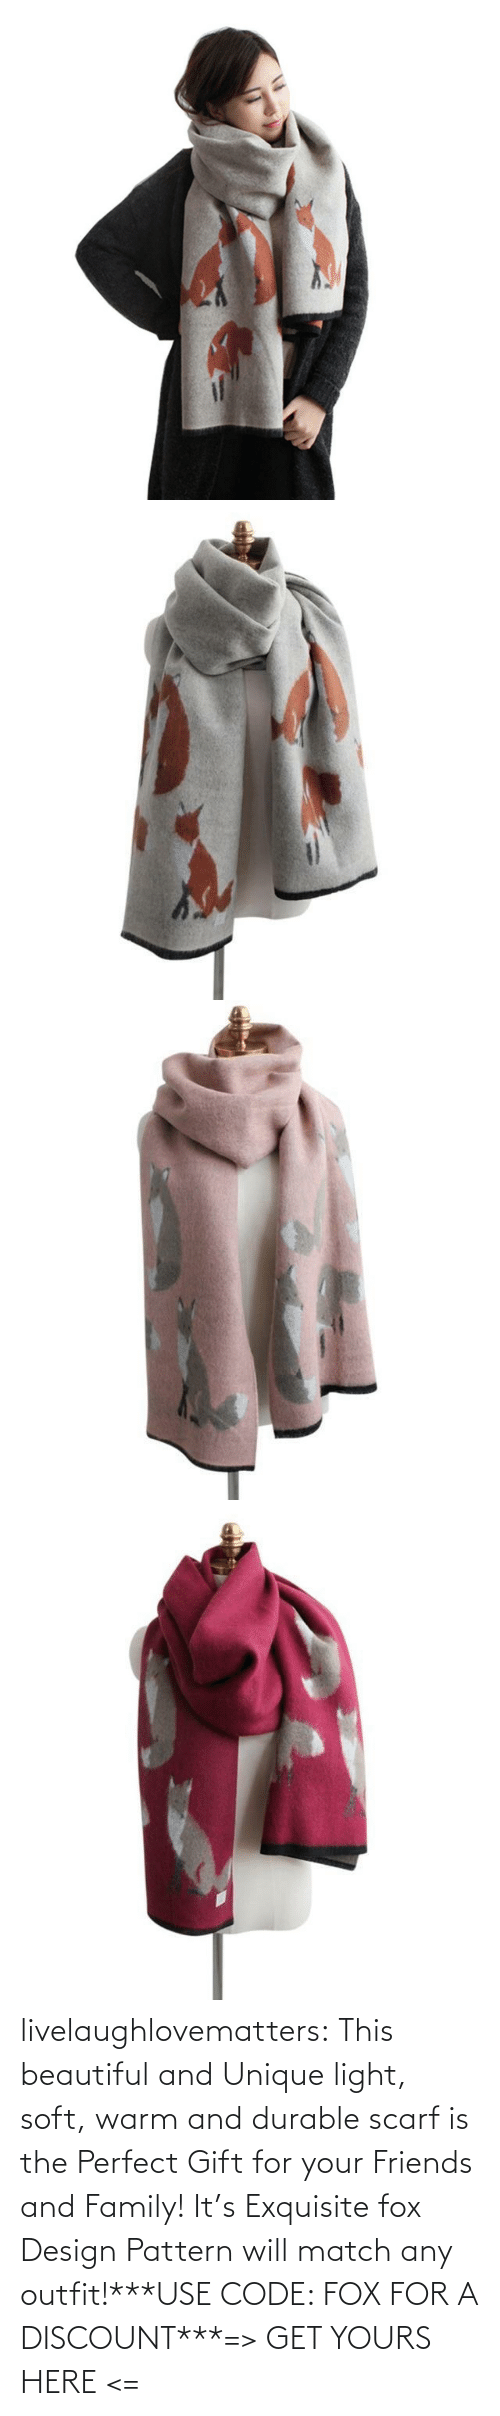 The Perfect: livelaughlovematters:  This beautiful and Unique light, soft, warm and durable scarf is the Perfect Gift for your Friends and Family! It's Exquisite fox Design Pattern will match any outfit!***USE CODE: FOX FOR A DISCOUNT***=> GET YOURS HERE <=